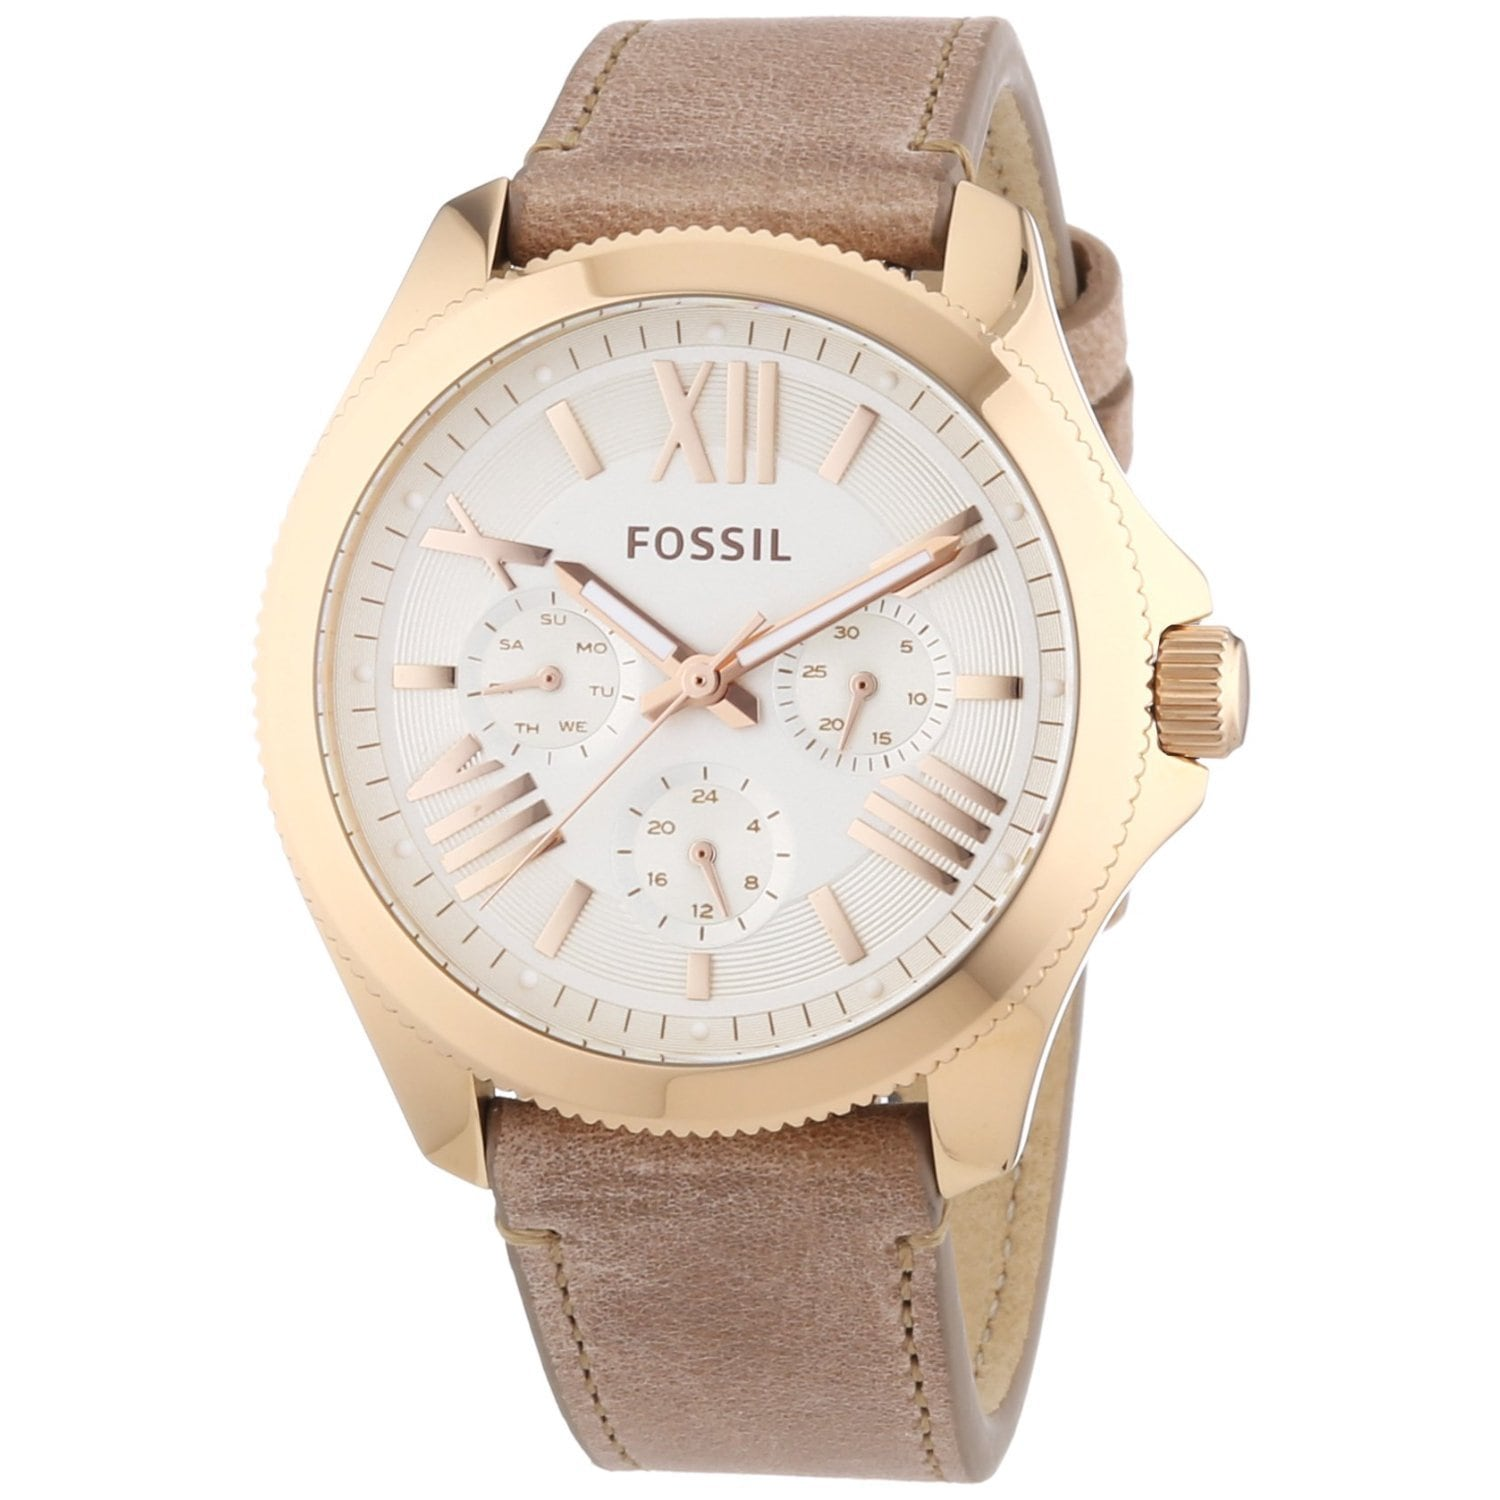 Fossil Women's AM4532 Cecile Rose Gold Watch (Ivory), Off...